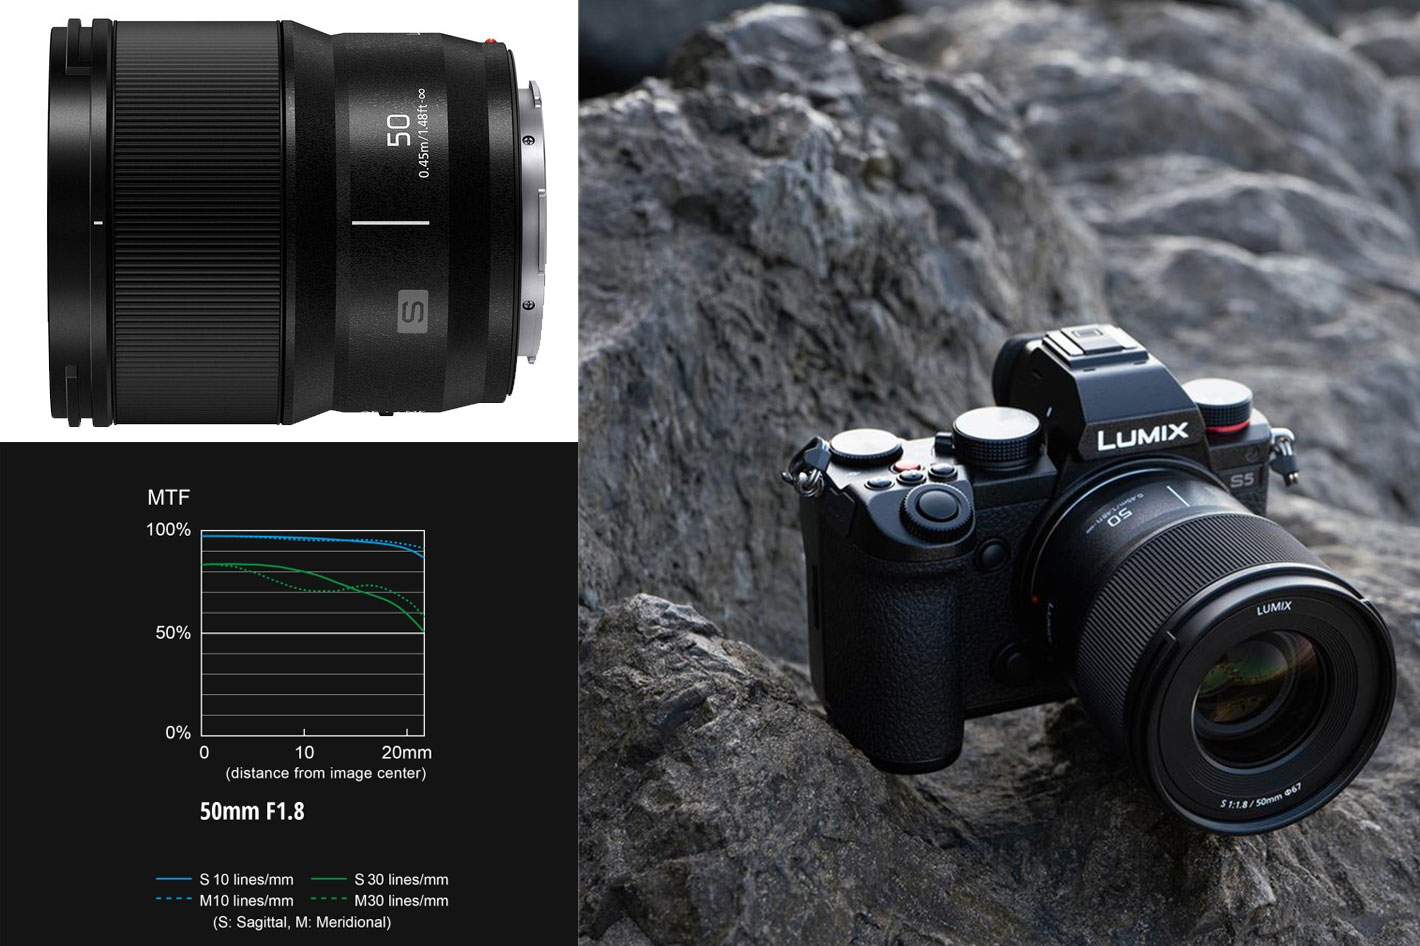 New Panasonic LUMIX S 50mm F1.8: ideal for video recording